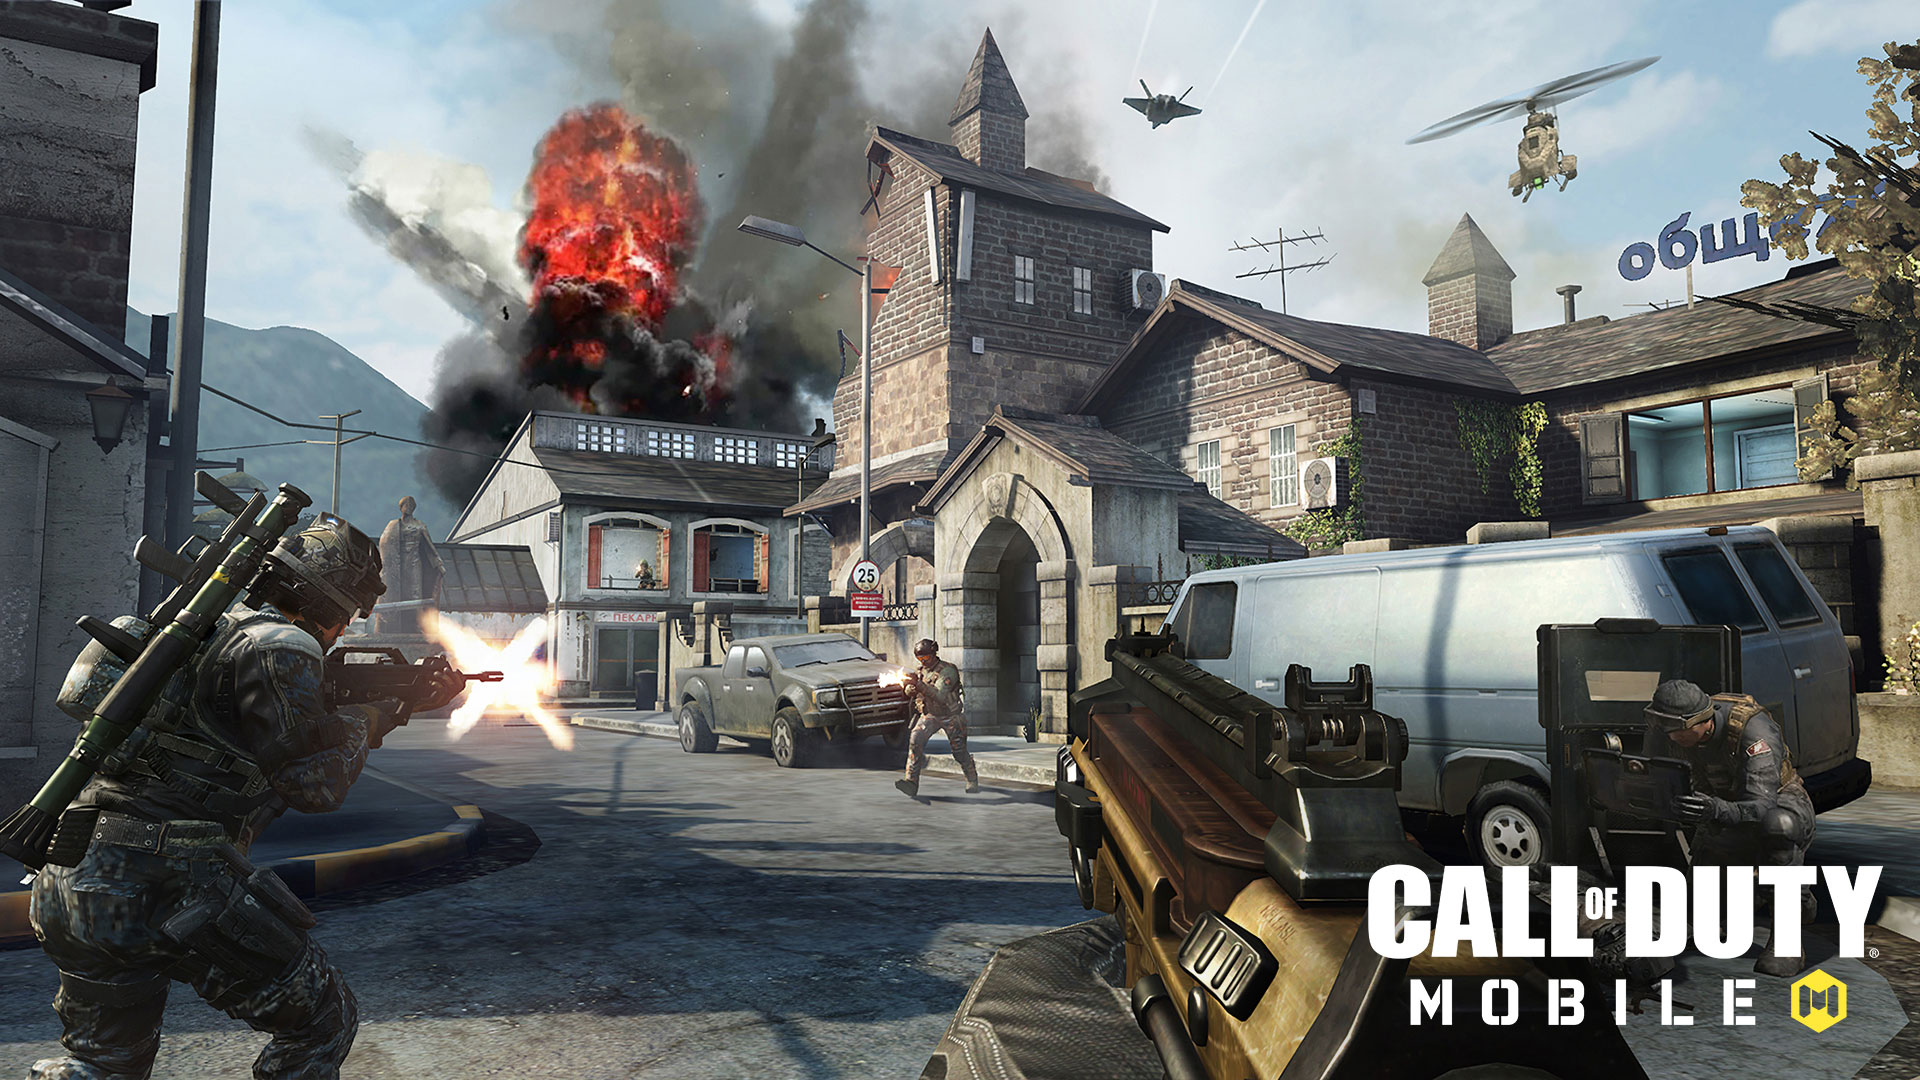 The Full Call Of Duty Franchise Is Coming To Mobile And The Ios